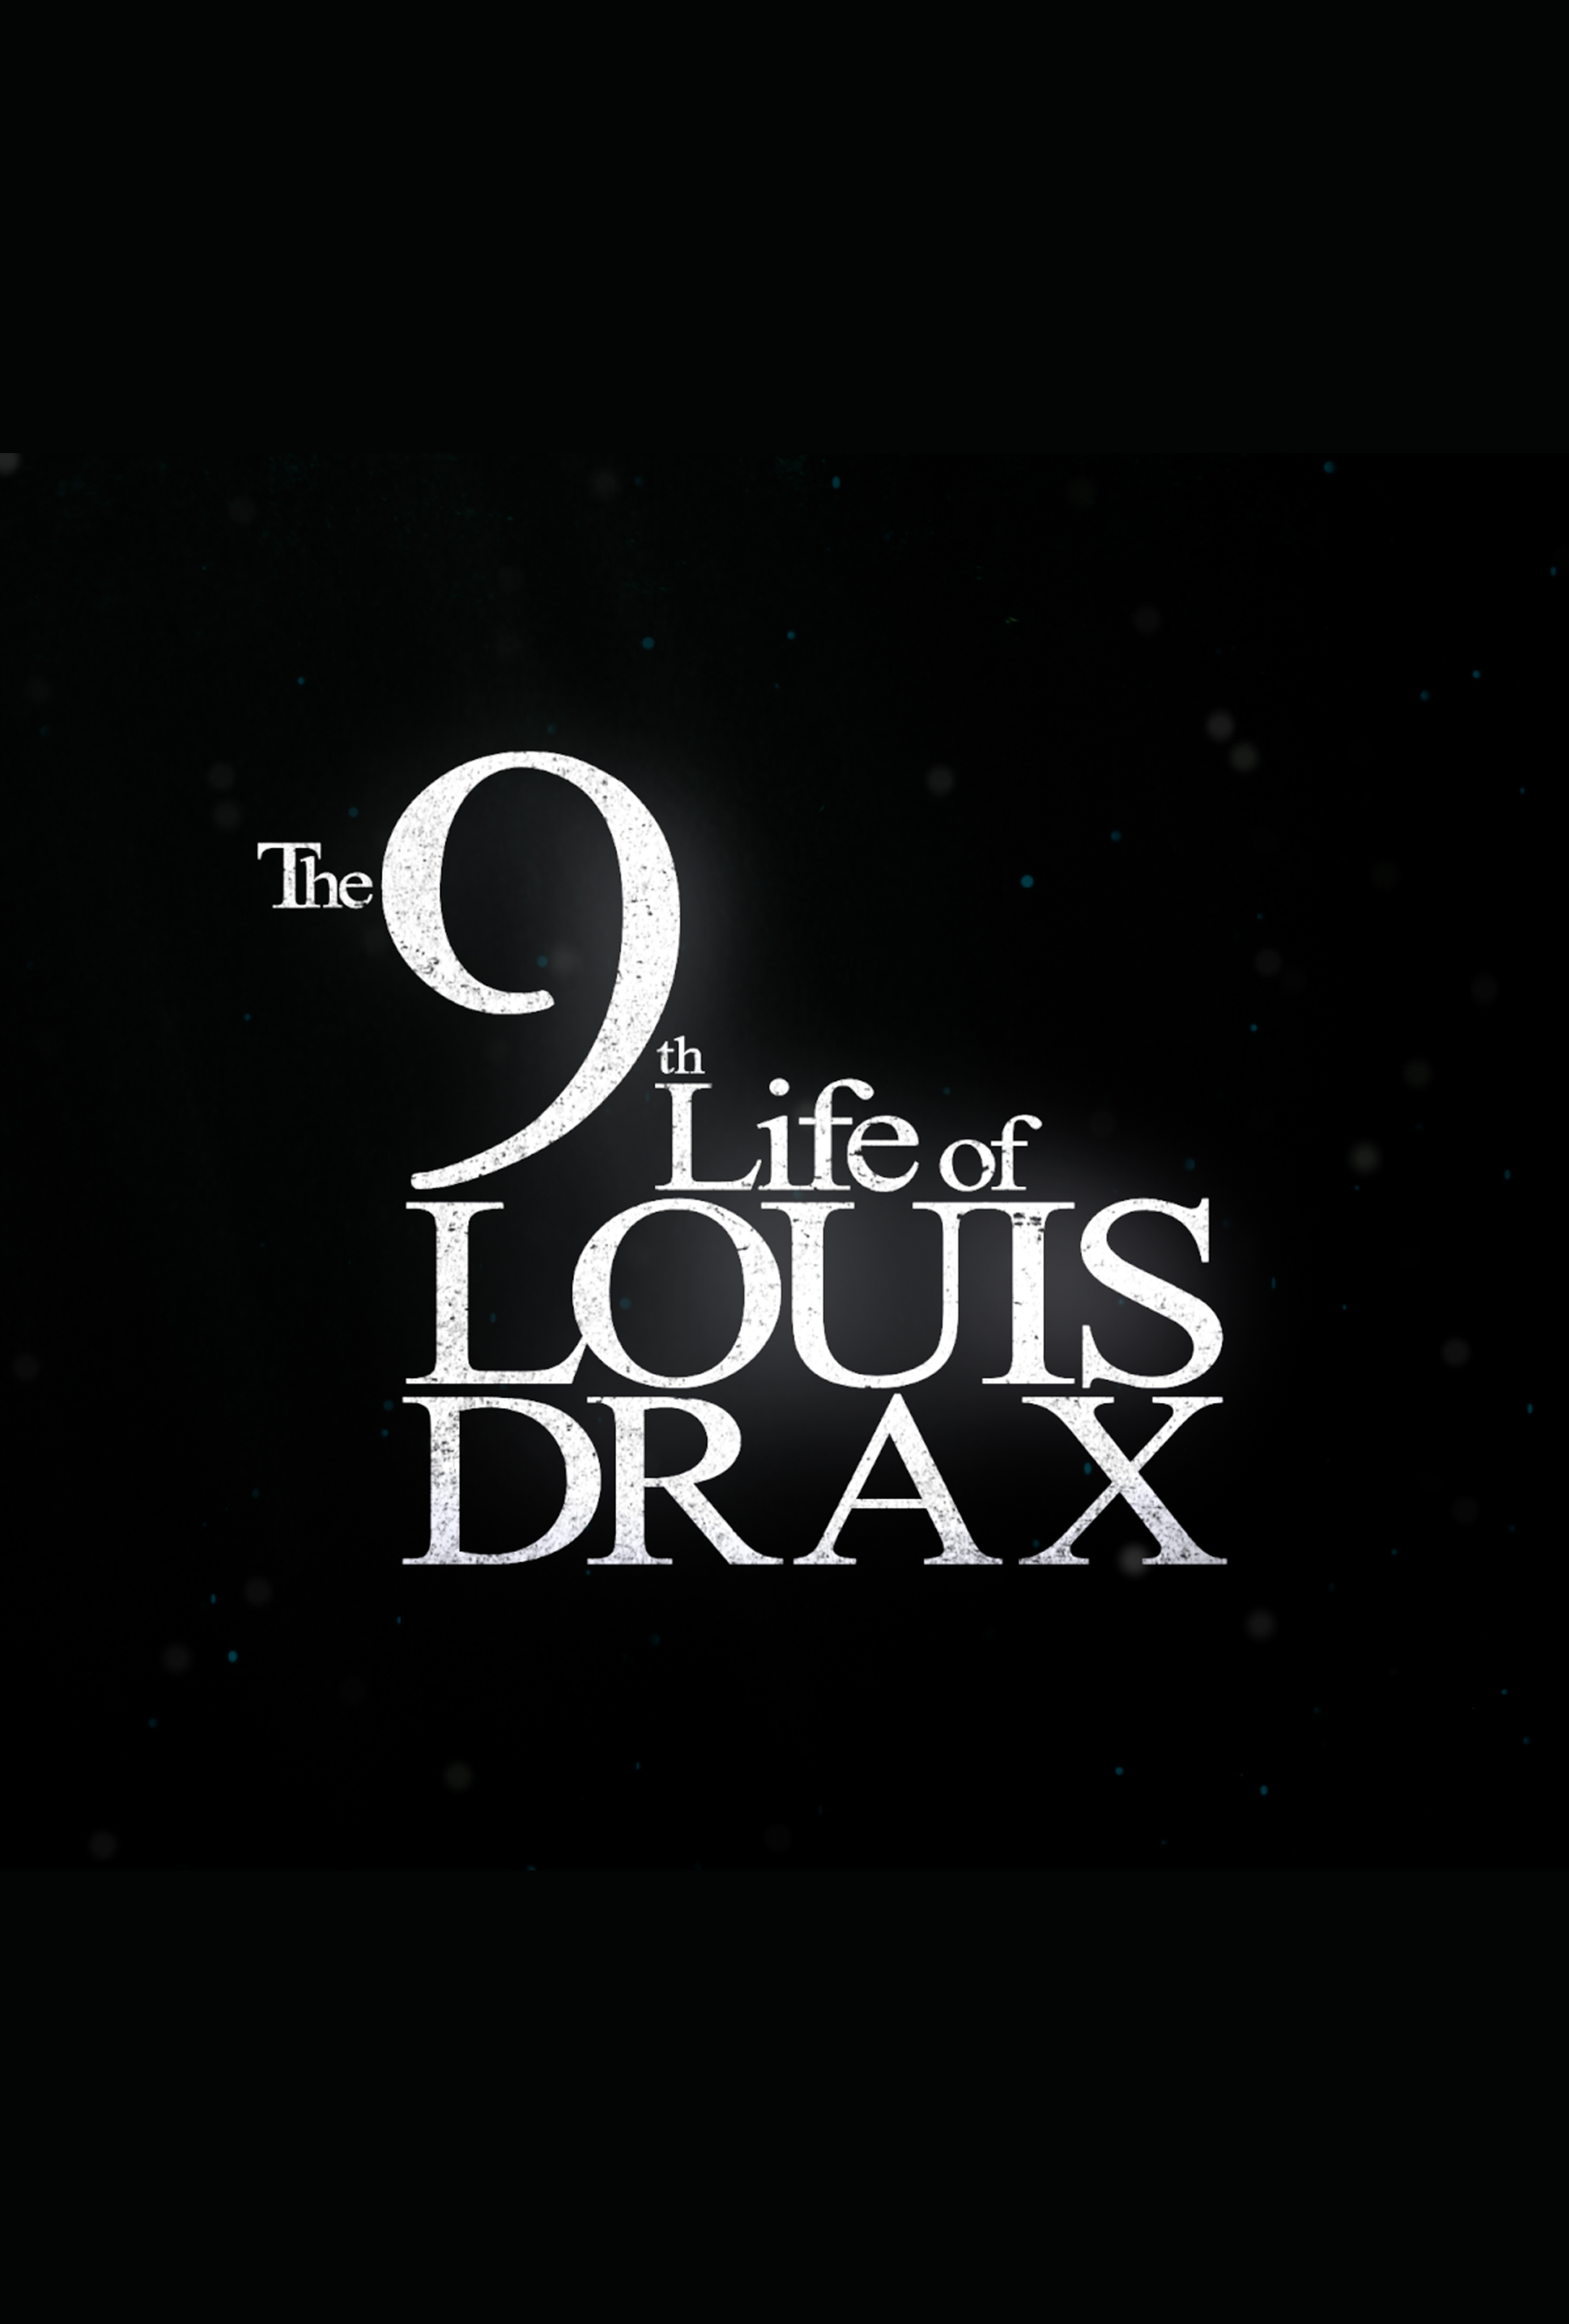 Trailer To The 9th Life of Louis Drax - blackfilm.com/read ...